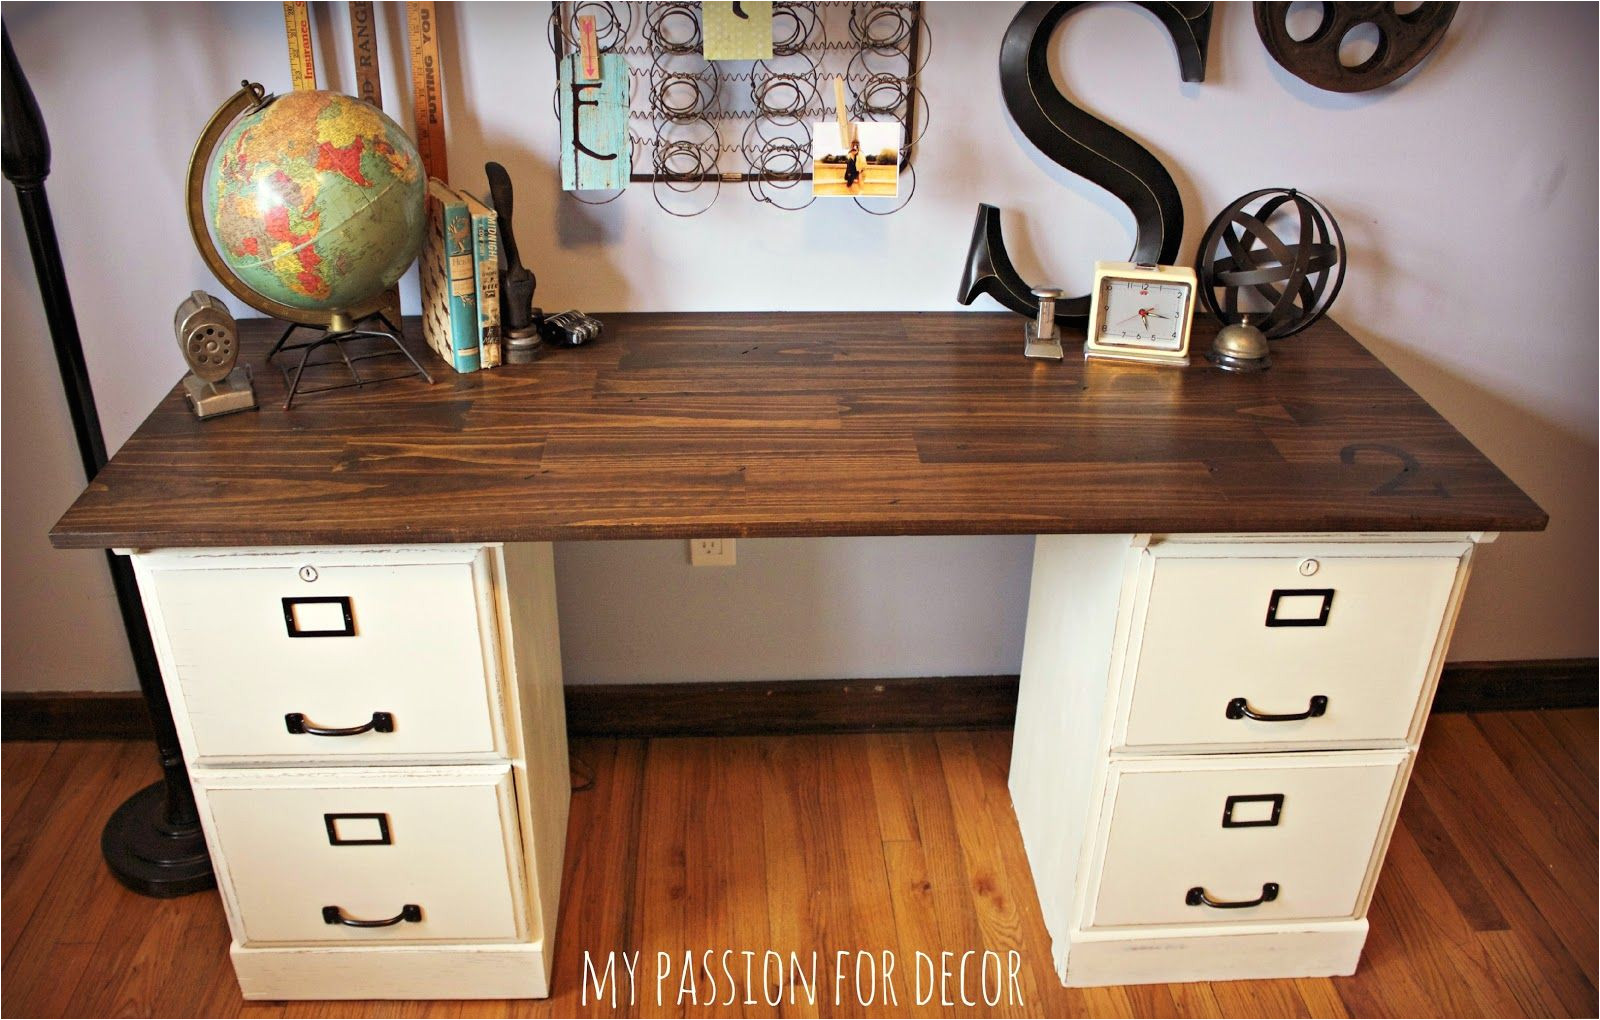 File Cabinet Desk Diy Pottery Barn Inspired Desk Using Goodwill Filing Cabinets In 2019